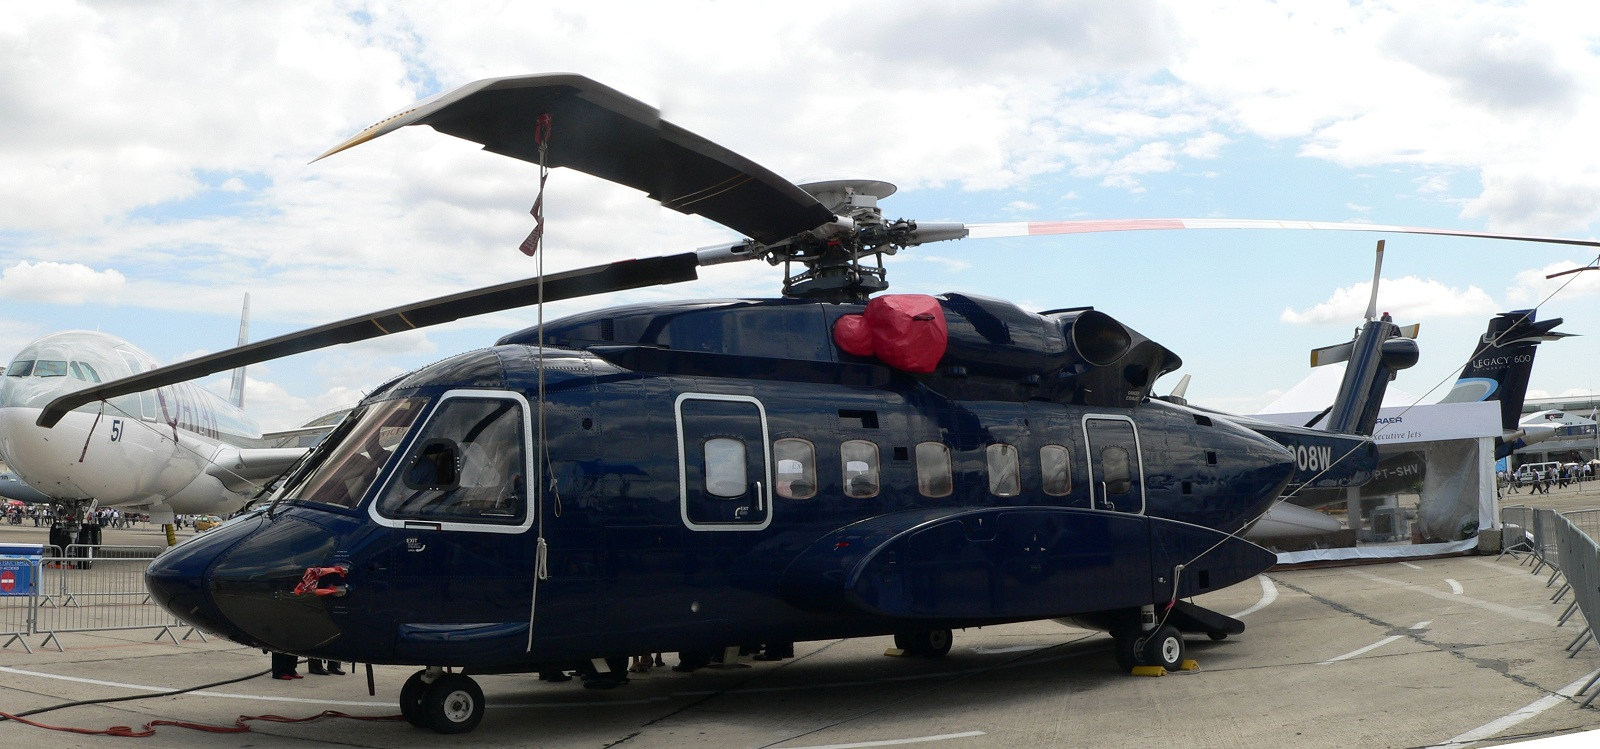 sikorsky s 92 helicopter price with Sikorsky Wins Us Navy Contract To on Sikorsky Wins Us Navy Contract To together with Trump Defense Budget Wishlist Massive Military Buildup 2018 2 additionally ExoticAircrafts also Weird Looking Aircraft Dont Look Like Able Fly in addition Product.